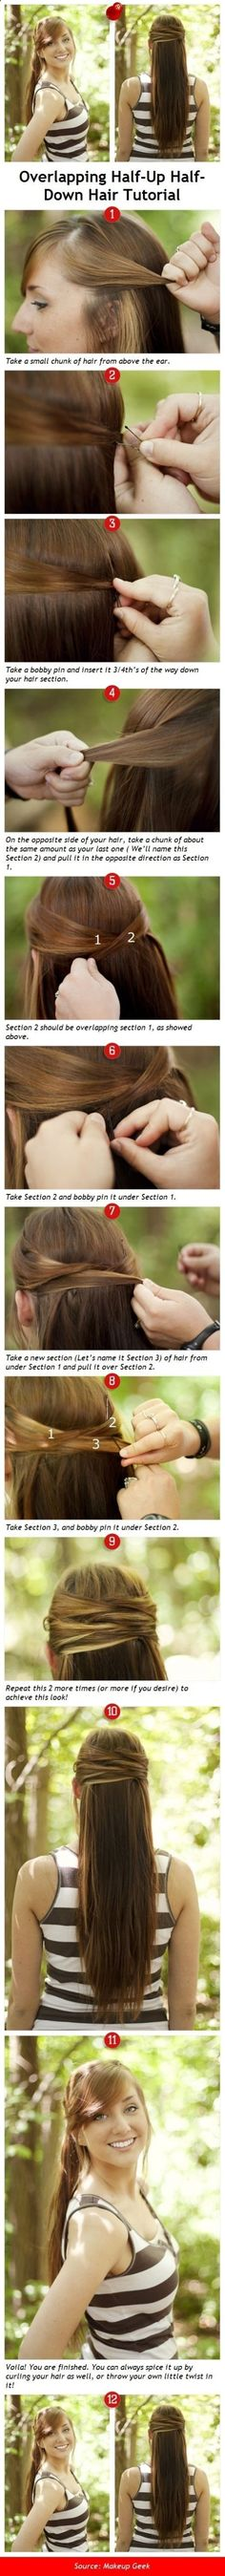 Half-up Half-down Hairstyles & Hair Tutorials for Women overlapping half-up half-down hair tutorial .overlapping half-up half-down hair tutorial . Diy Hairstyles, Pretty Hairstyles, Wedding Hairstyles, Perfect Hairstyle, Simple Hairstyles, Everyday Hairstyles, Half Up Half Down Hair Tutorial, Half Updo, Coiffure Hair